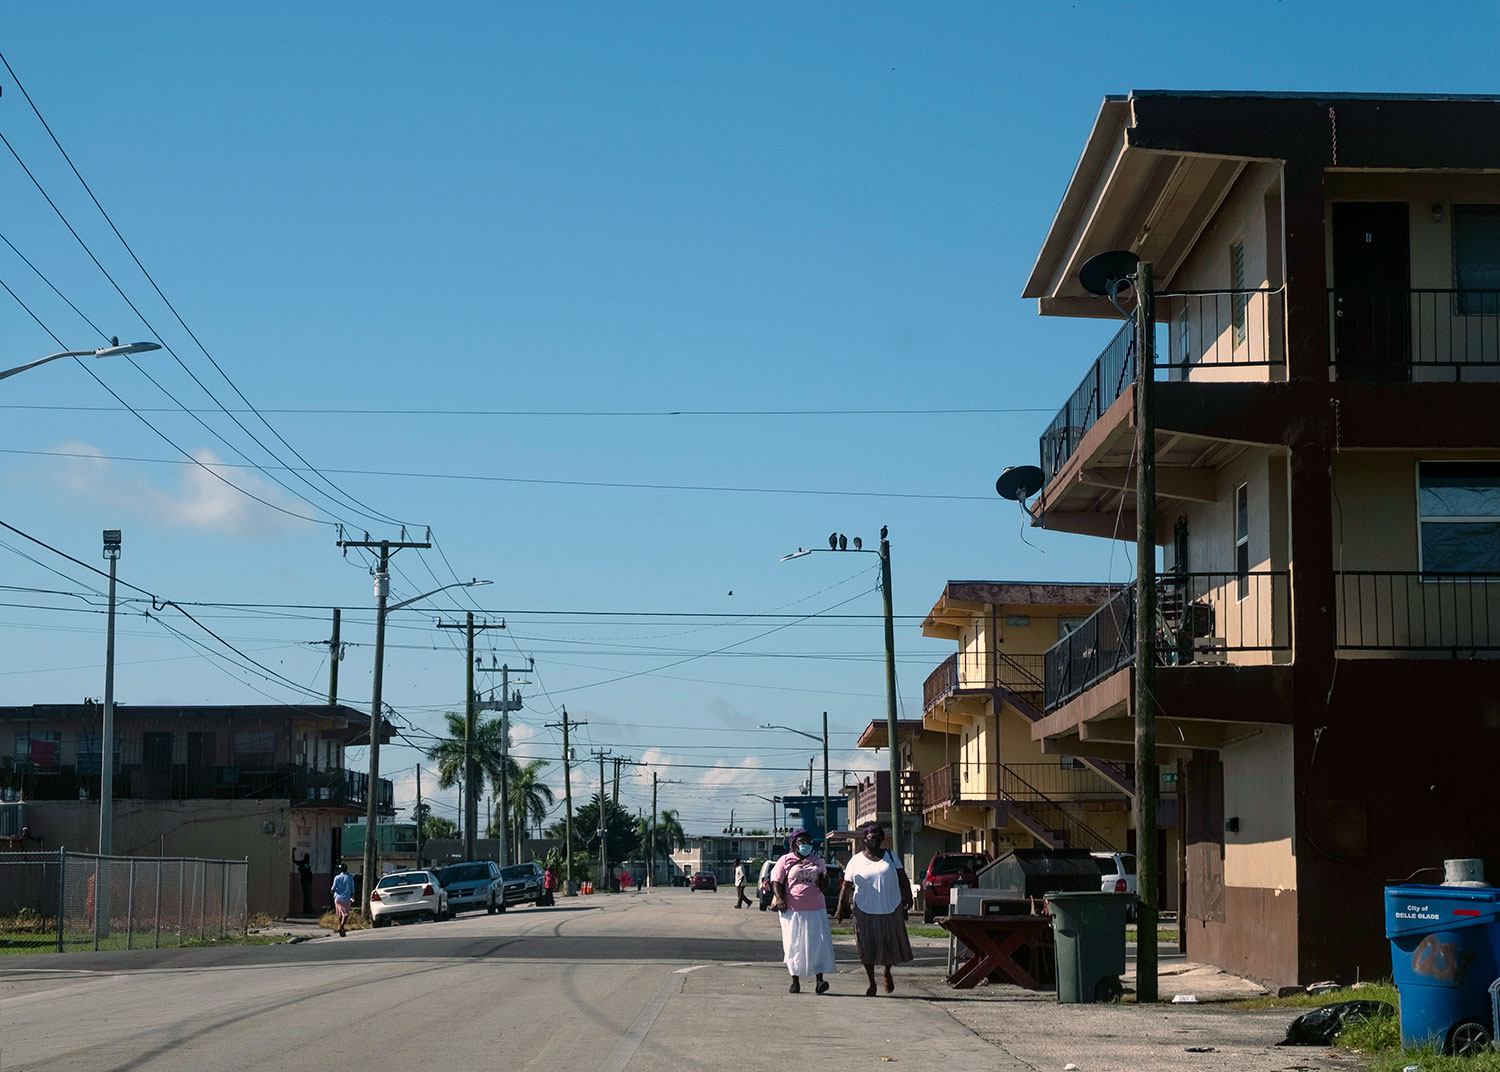 Belle Glade residents wearing masks walk down a street off of Martin Luther King, Jr. Boulevard, as COVID infection rates in Florida reach record highs (left).